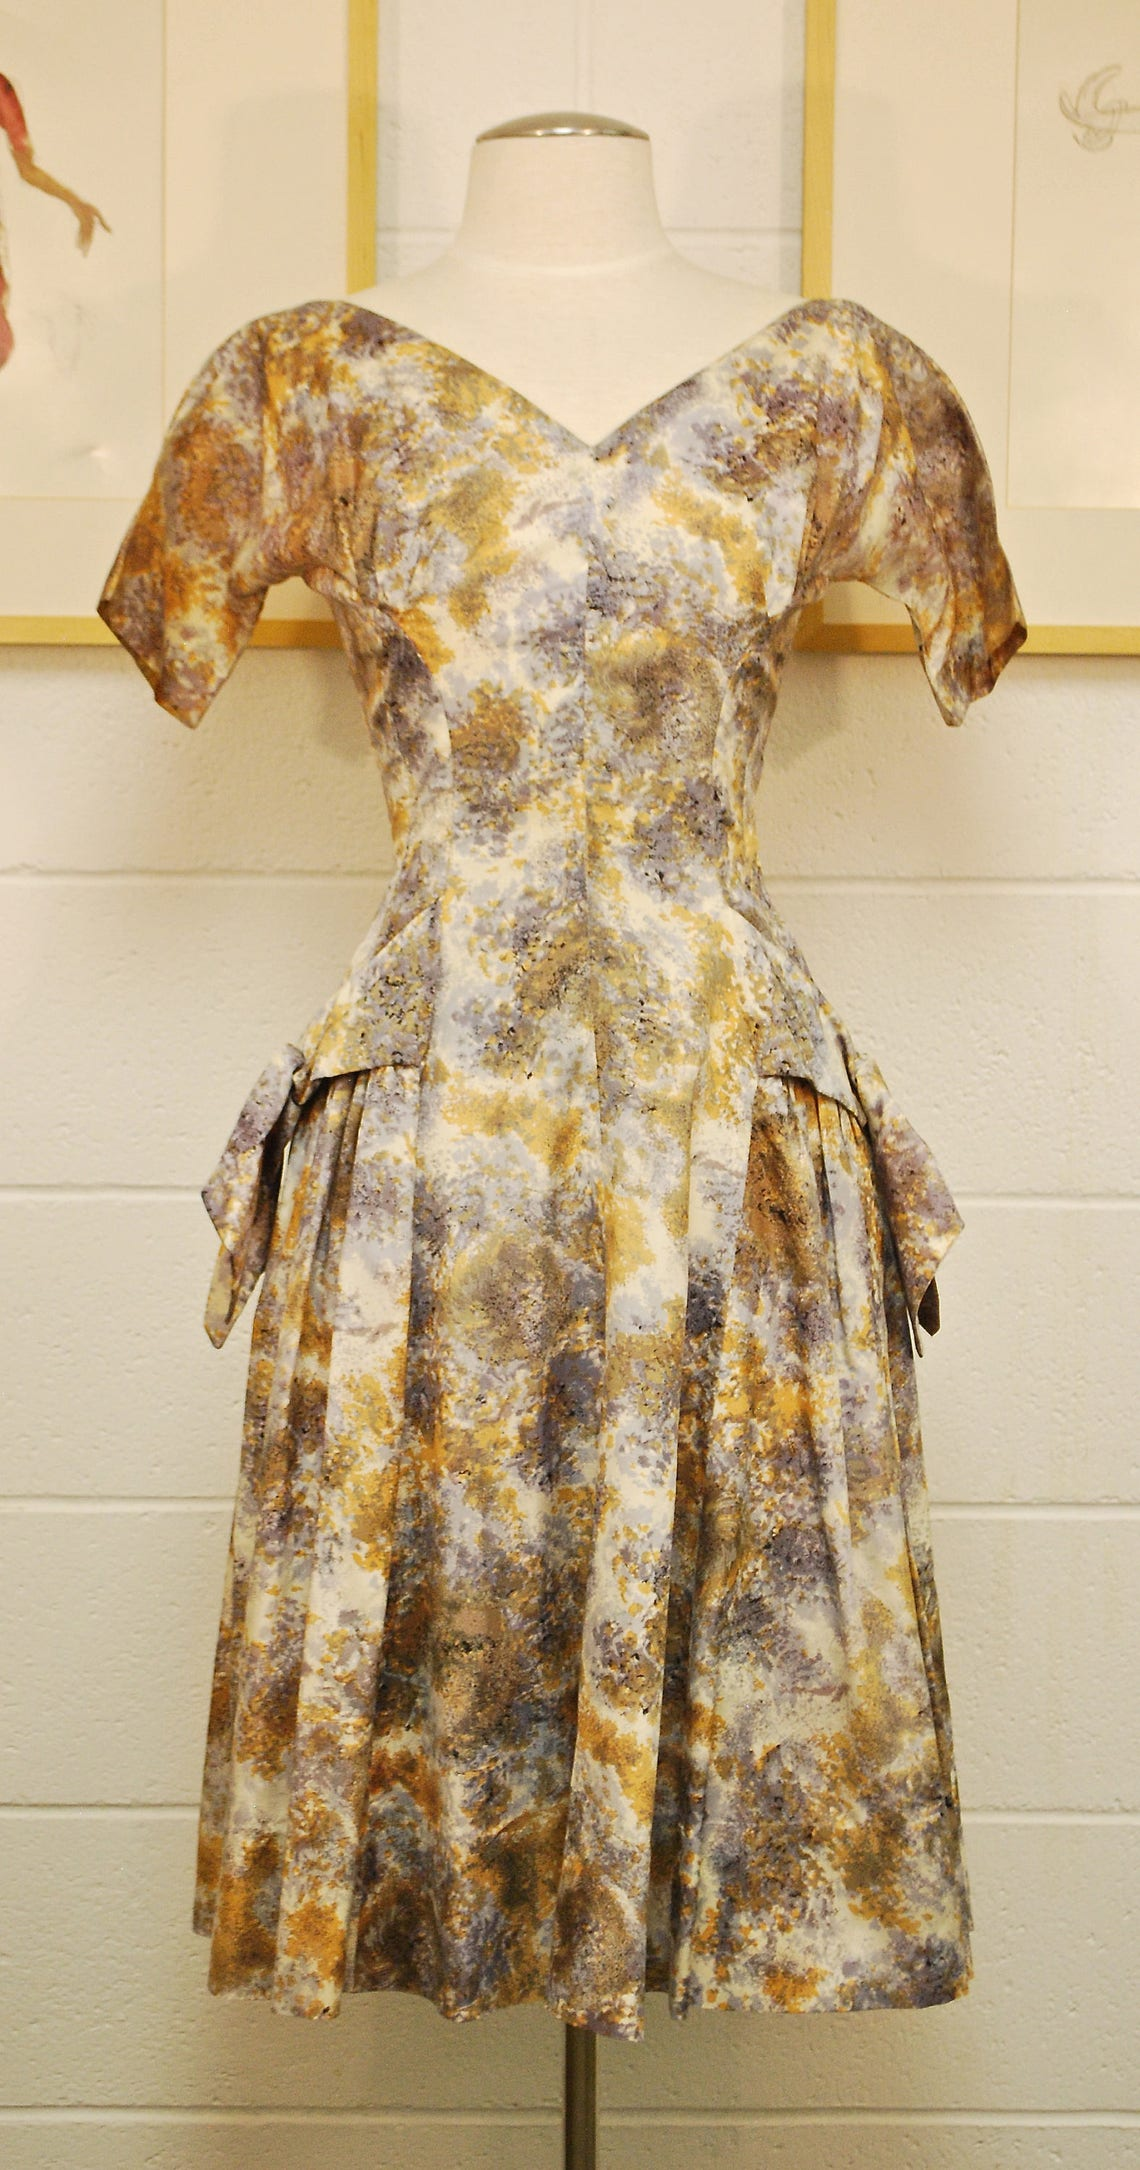 1950's/60's Brown and Mauve Fit and Flare Party Dress